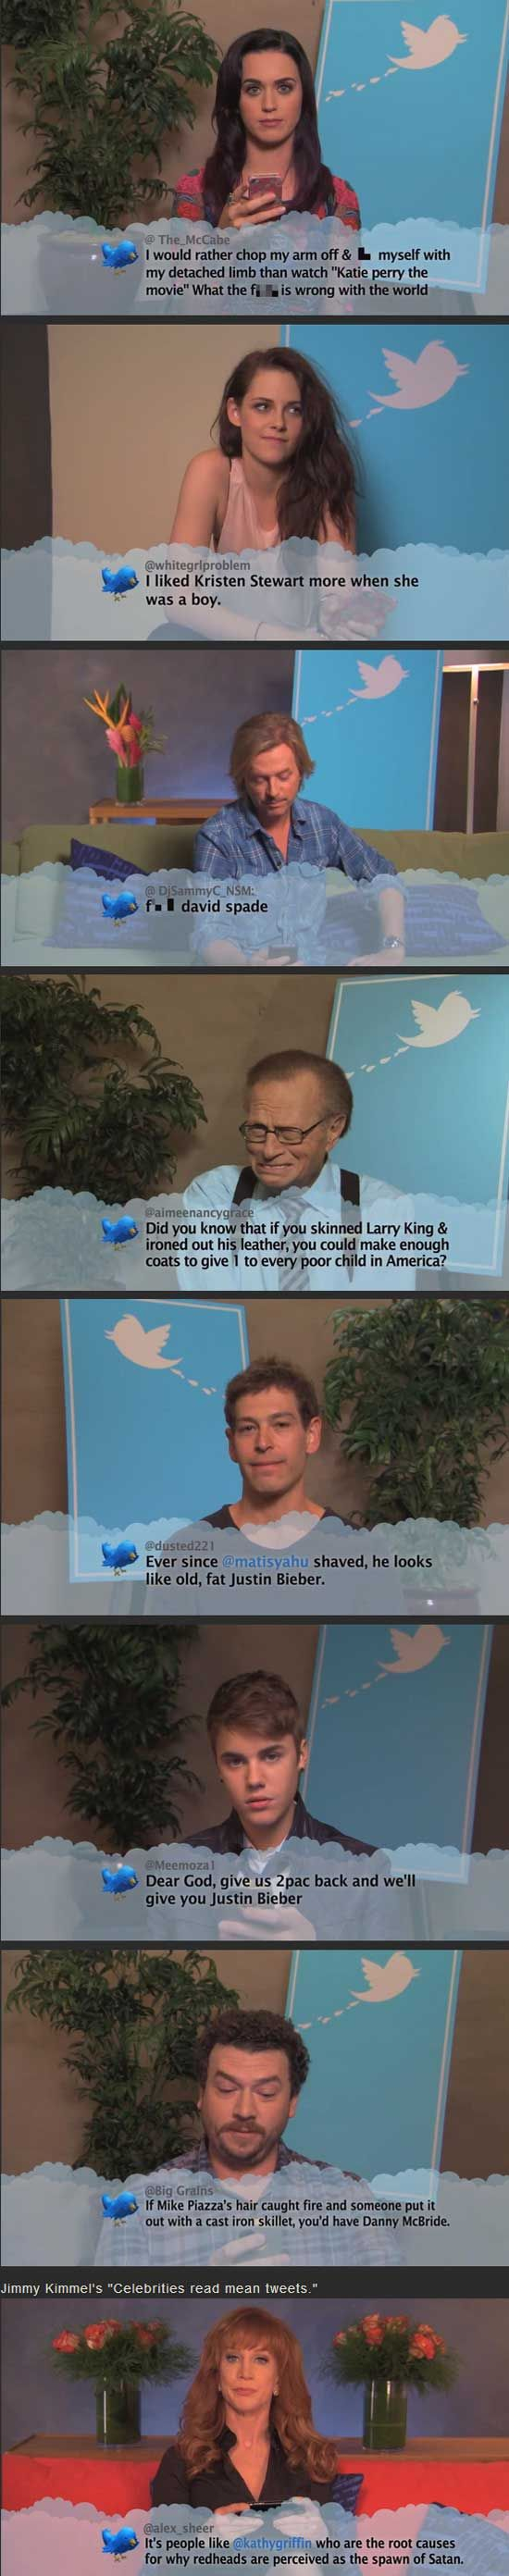 Jimmy Kimmel Mean Tweets Country Edition Video